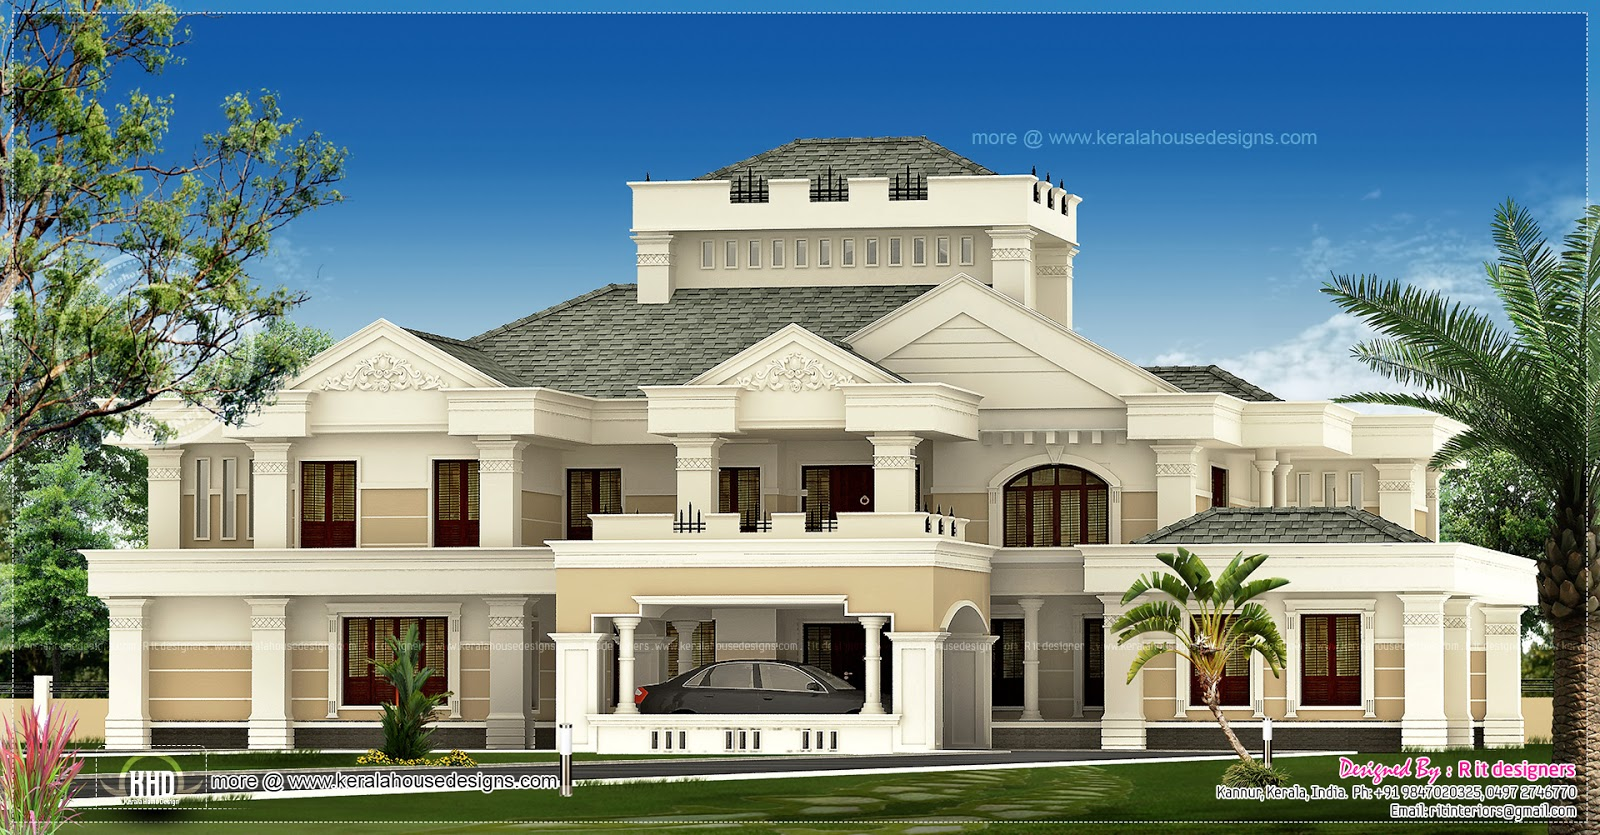 Super luxury kerala house exterior house design plans - Kerala exterior model homes ...